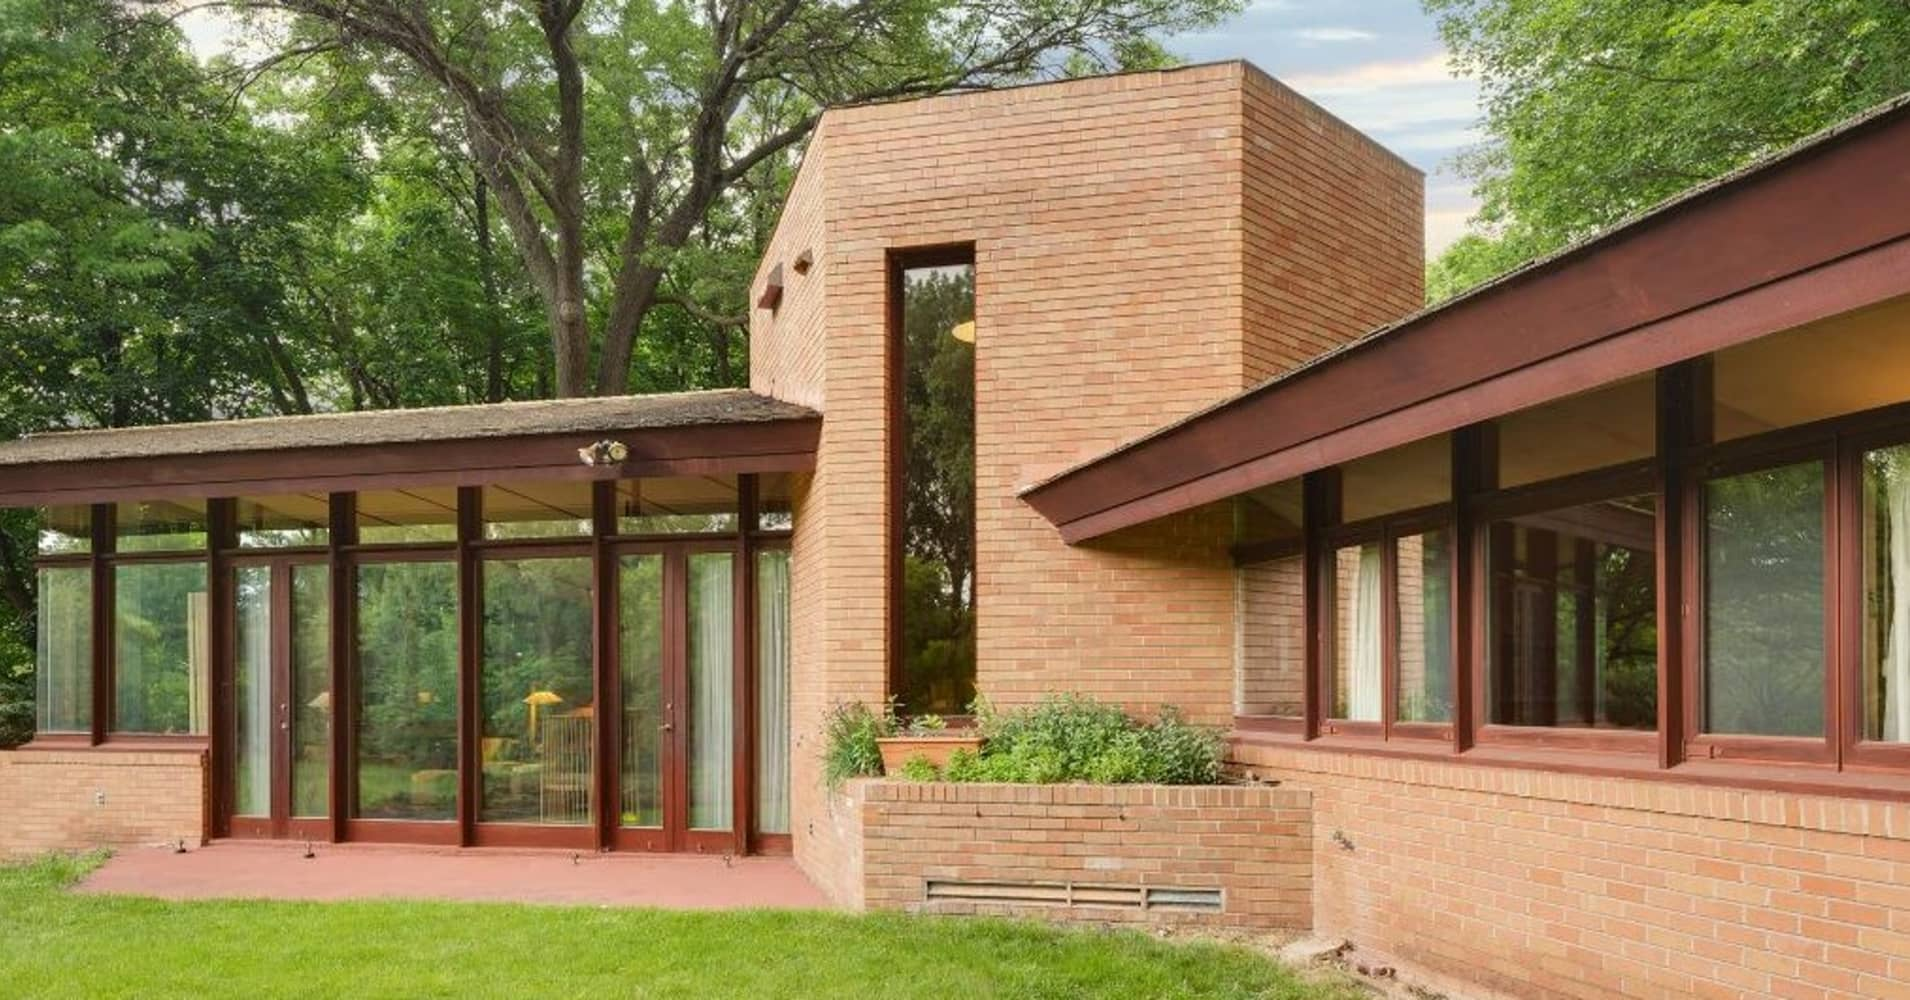 Photos of $1.3 million home designed by Frank Lloyd Wright